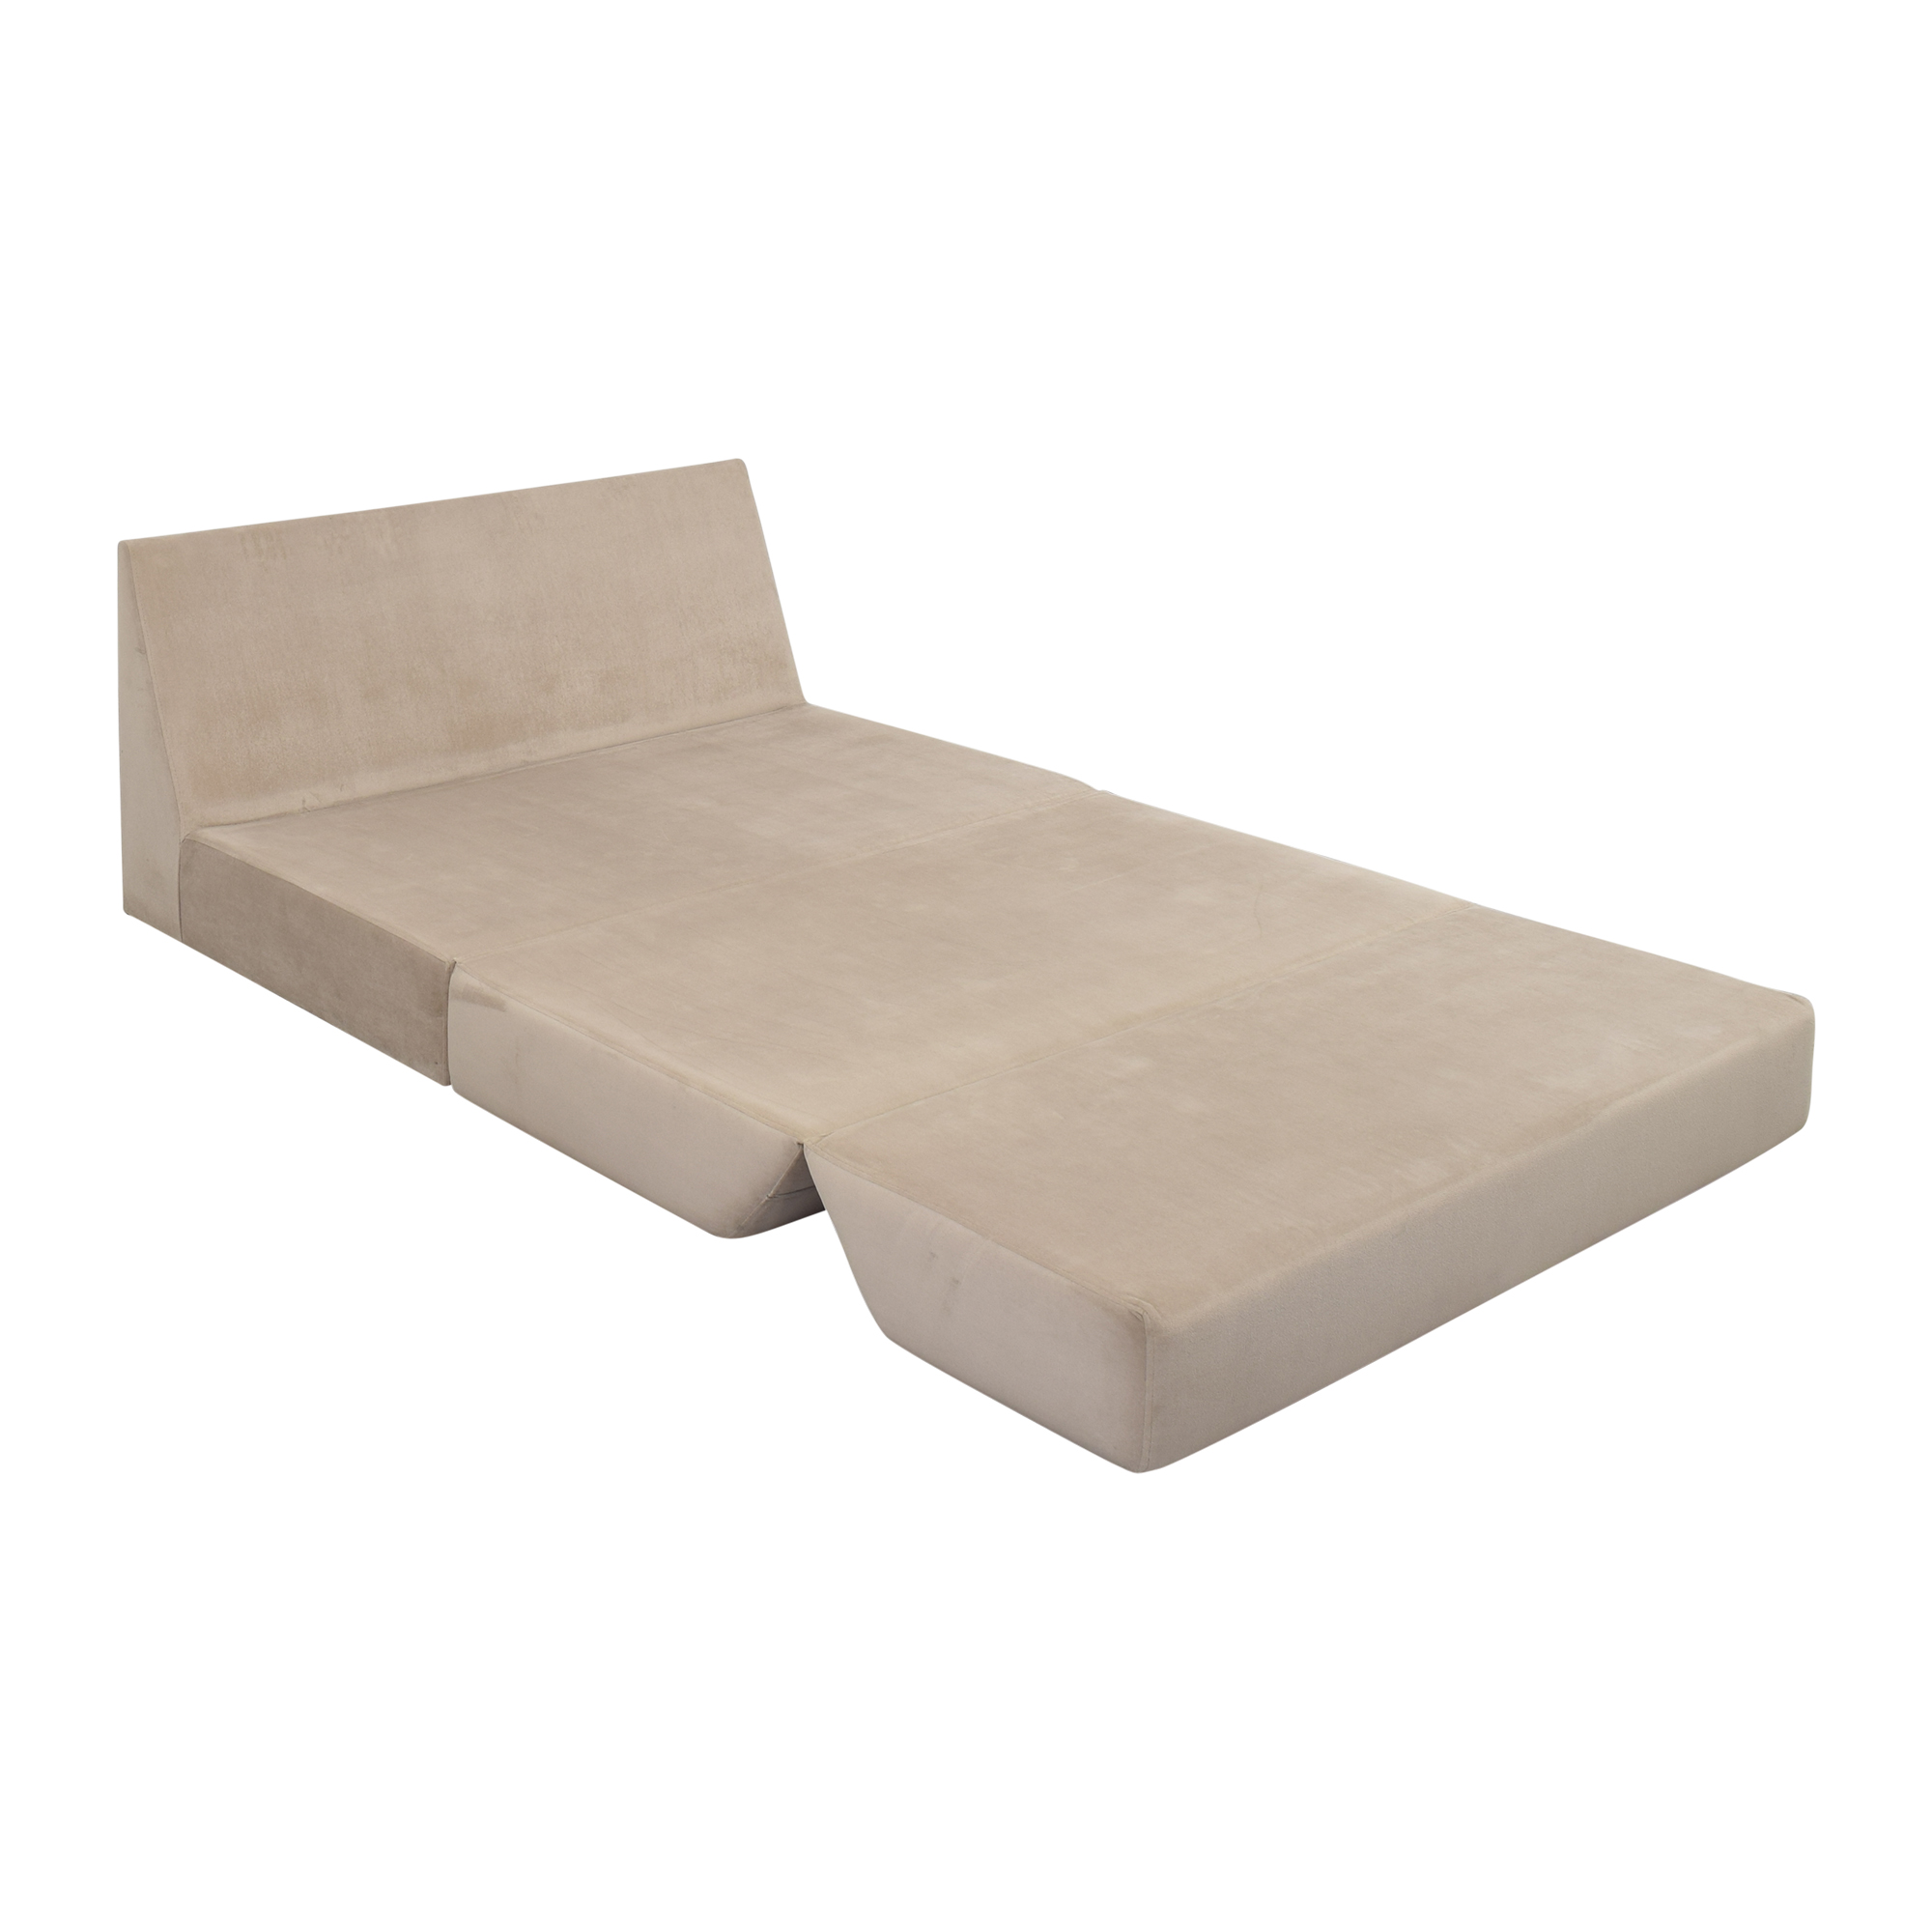 Chaise Lounge Sofa Bed price